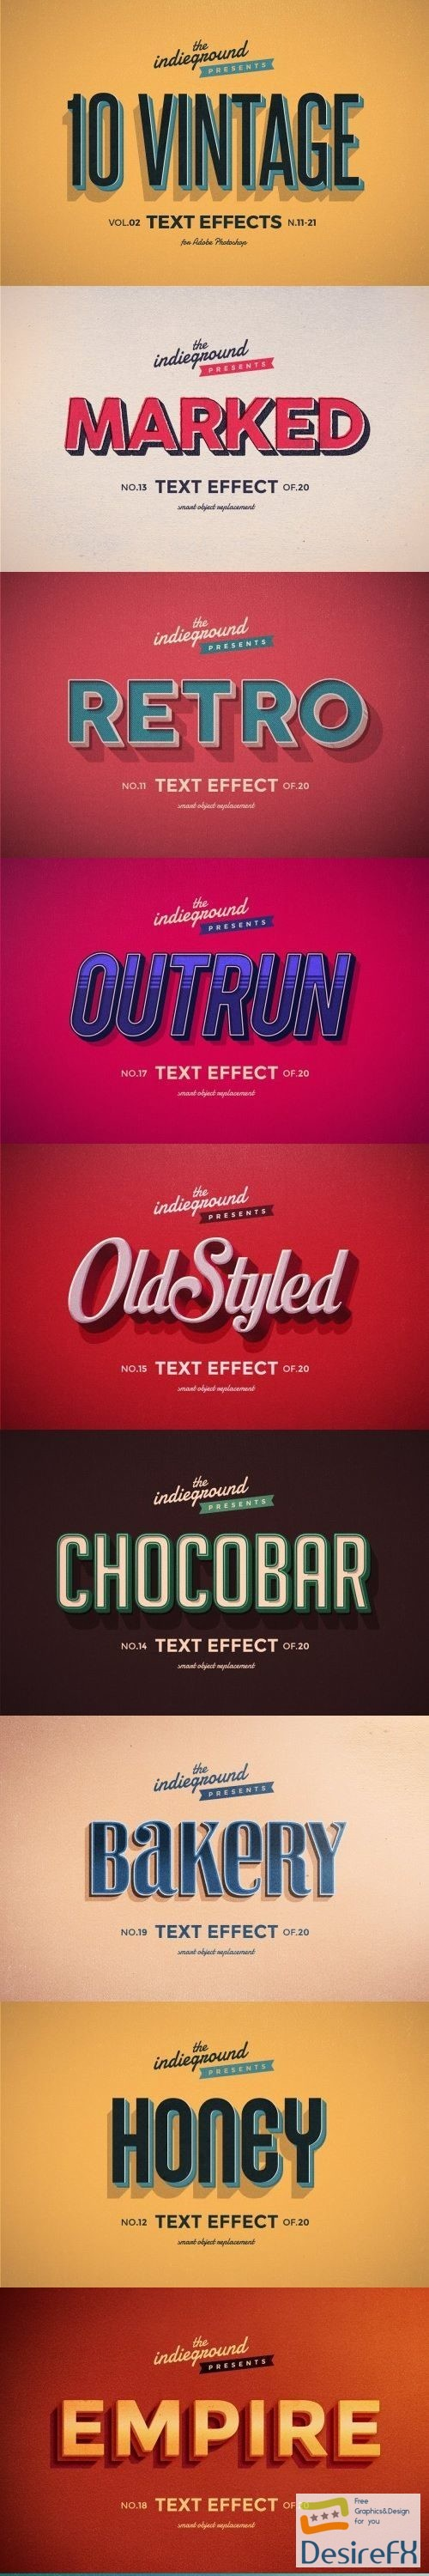 layered-psd - CM Retro Text Effects Vol.2 - 3904016